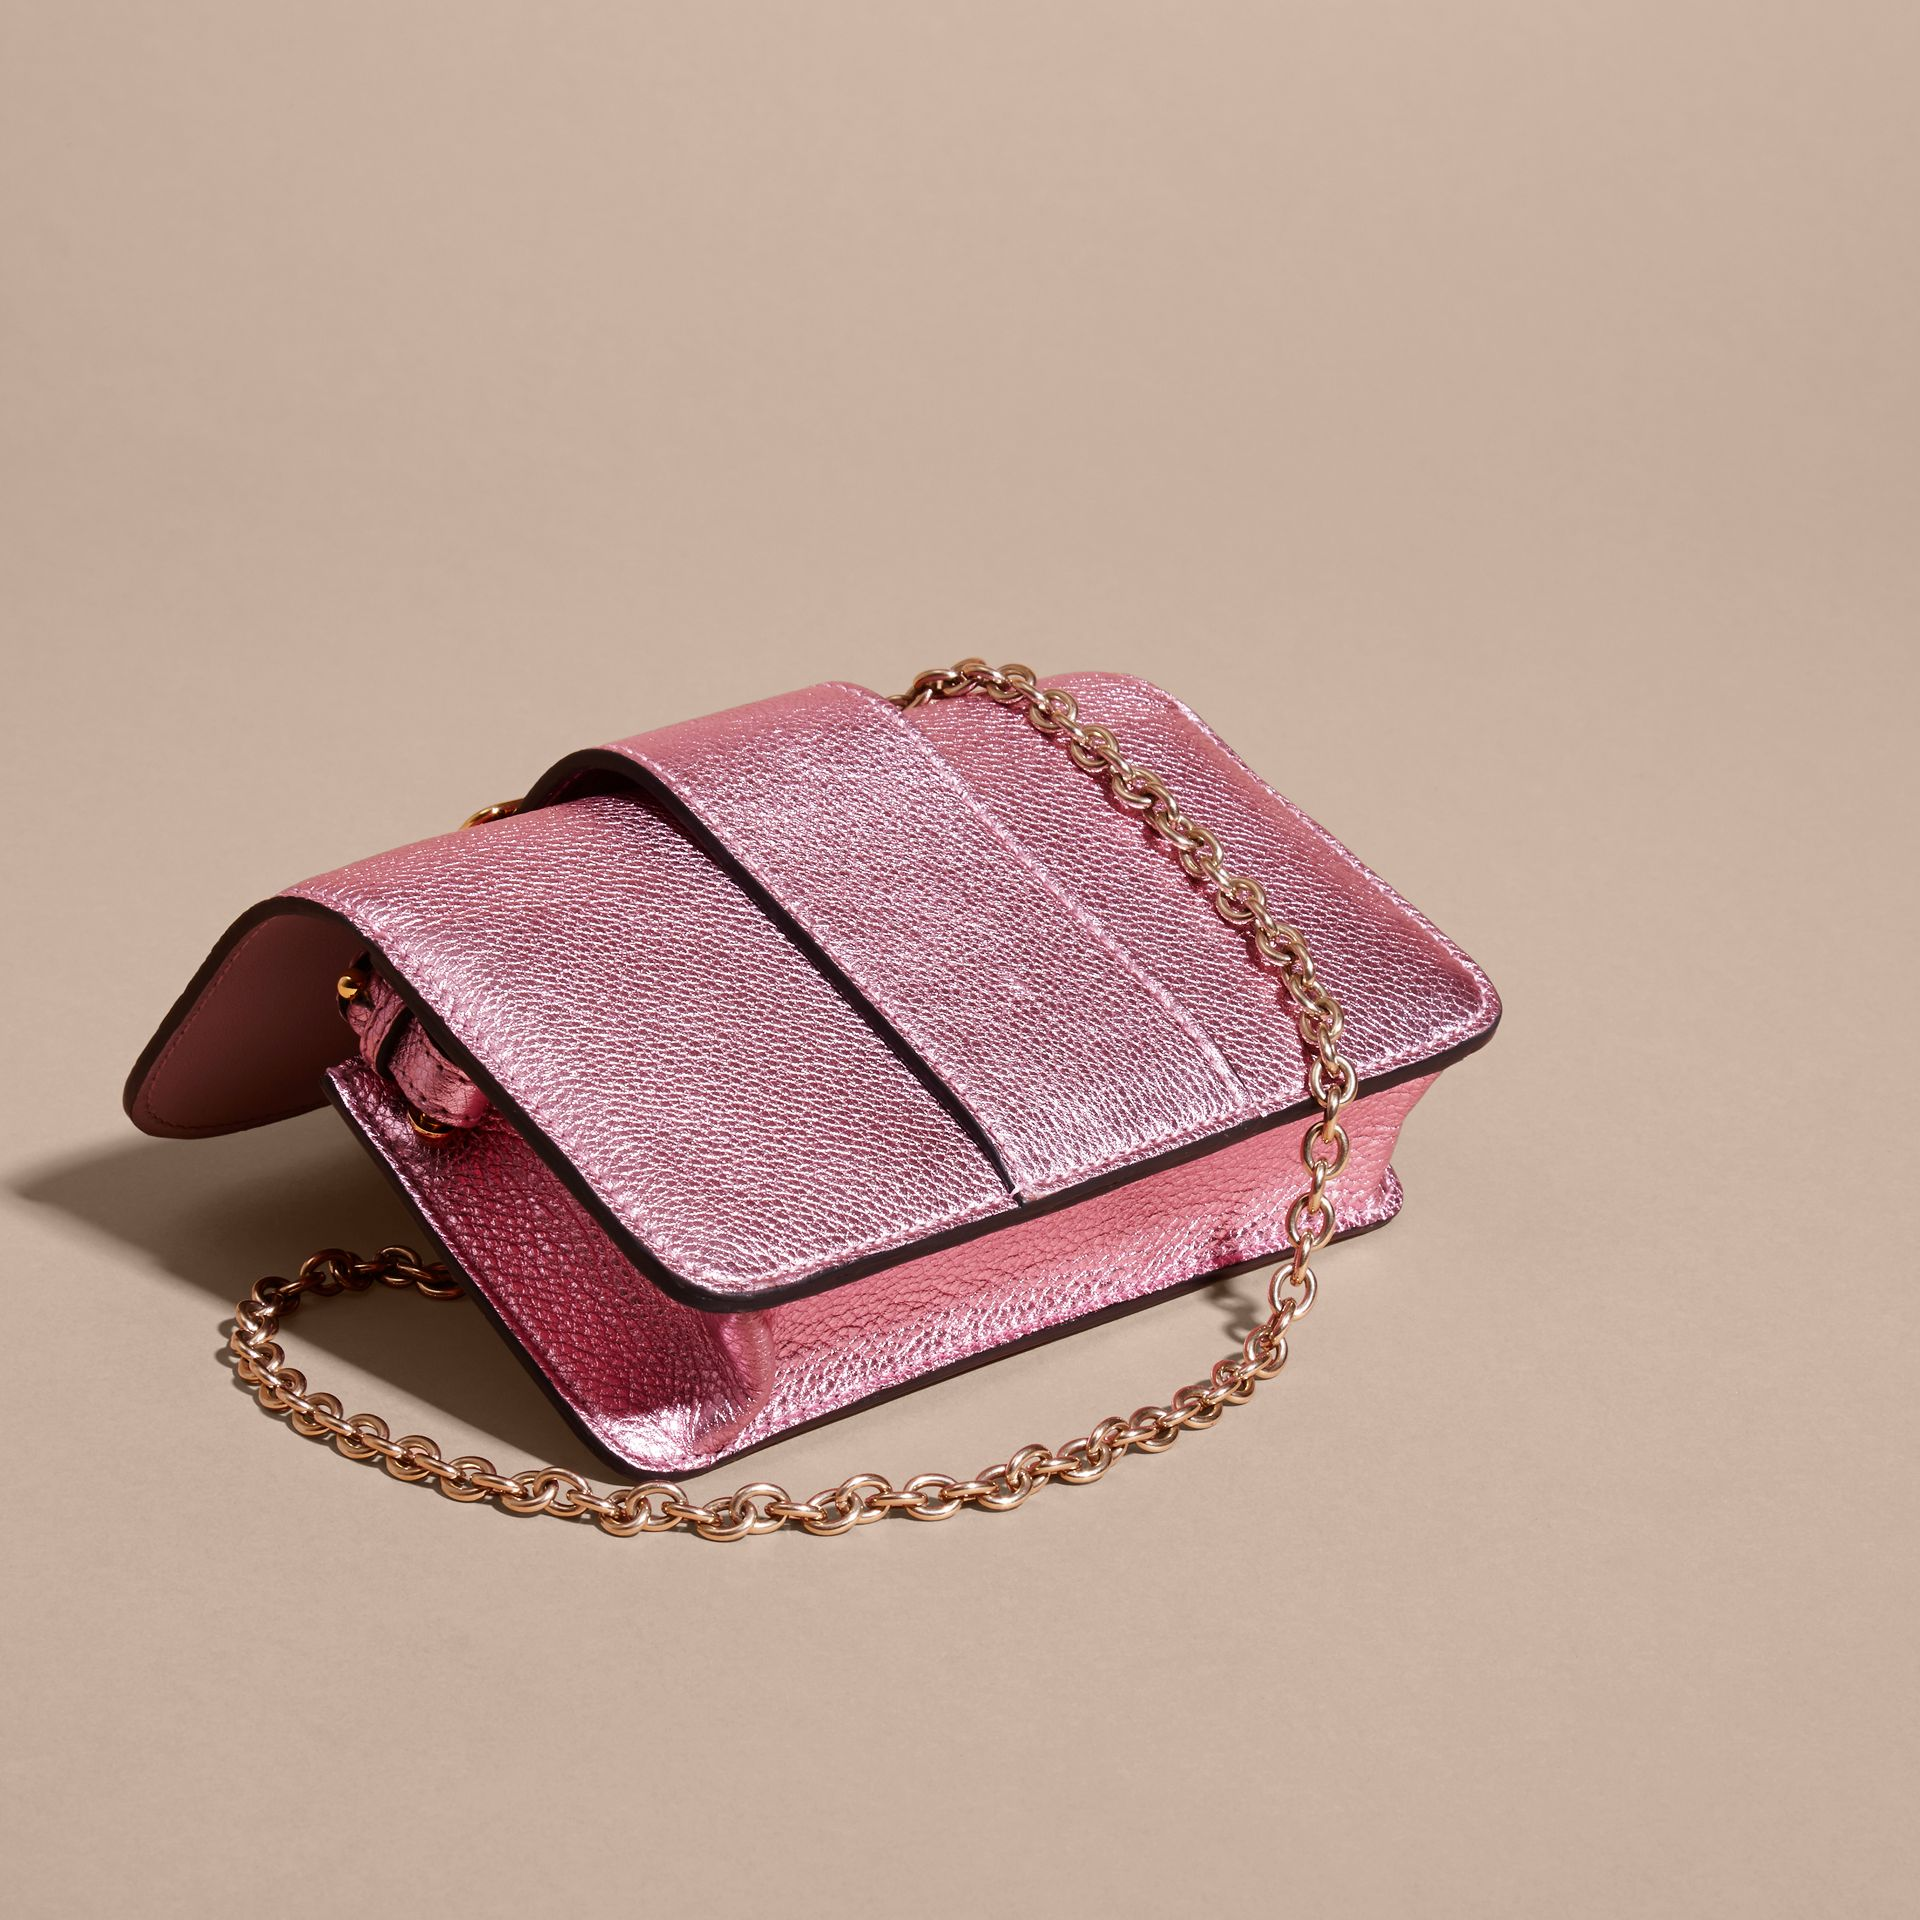 Pale orchid The Mini Buckle Bag in Metallic Grainy Leather Pale Orchid - gallery image 5